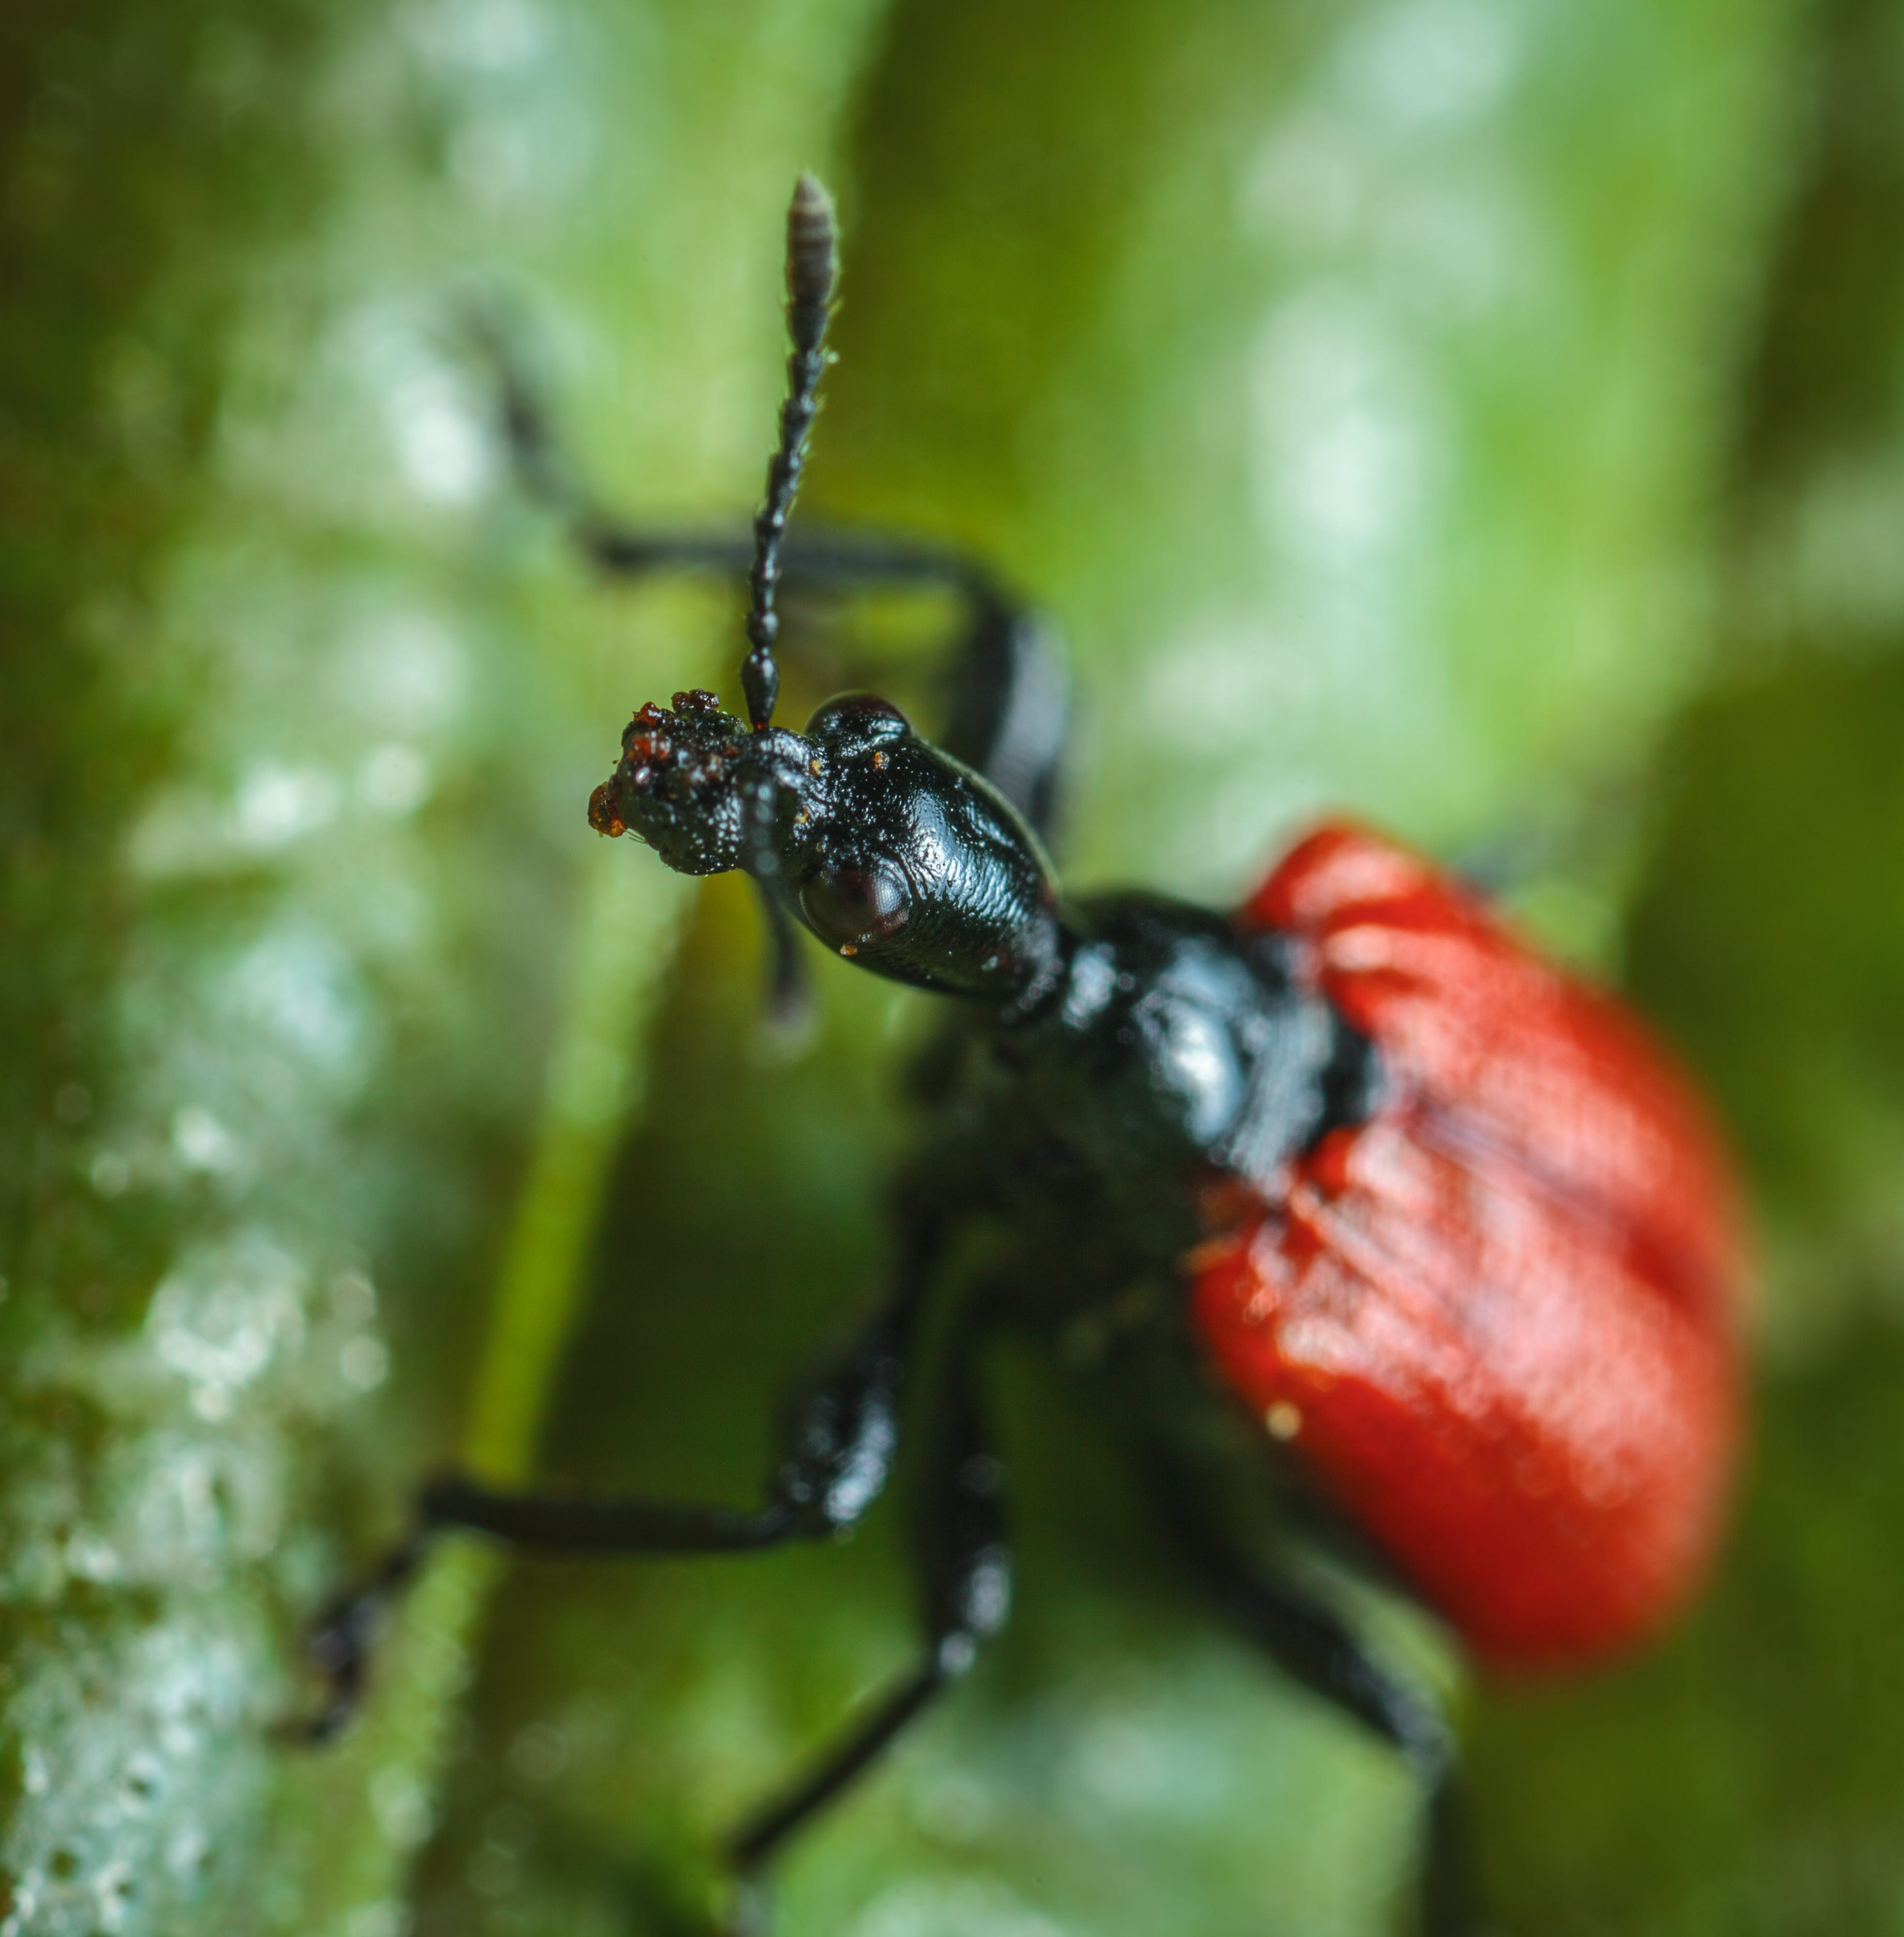 Red and Black Insect